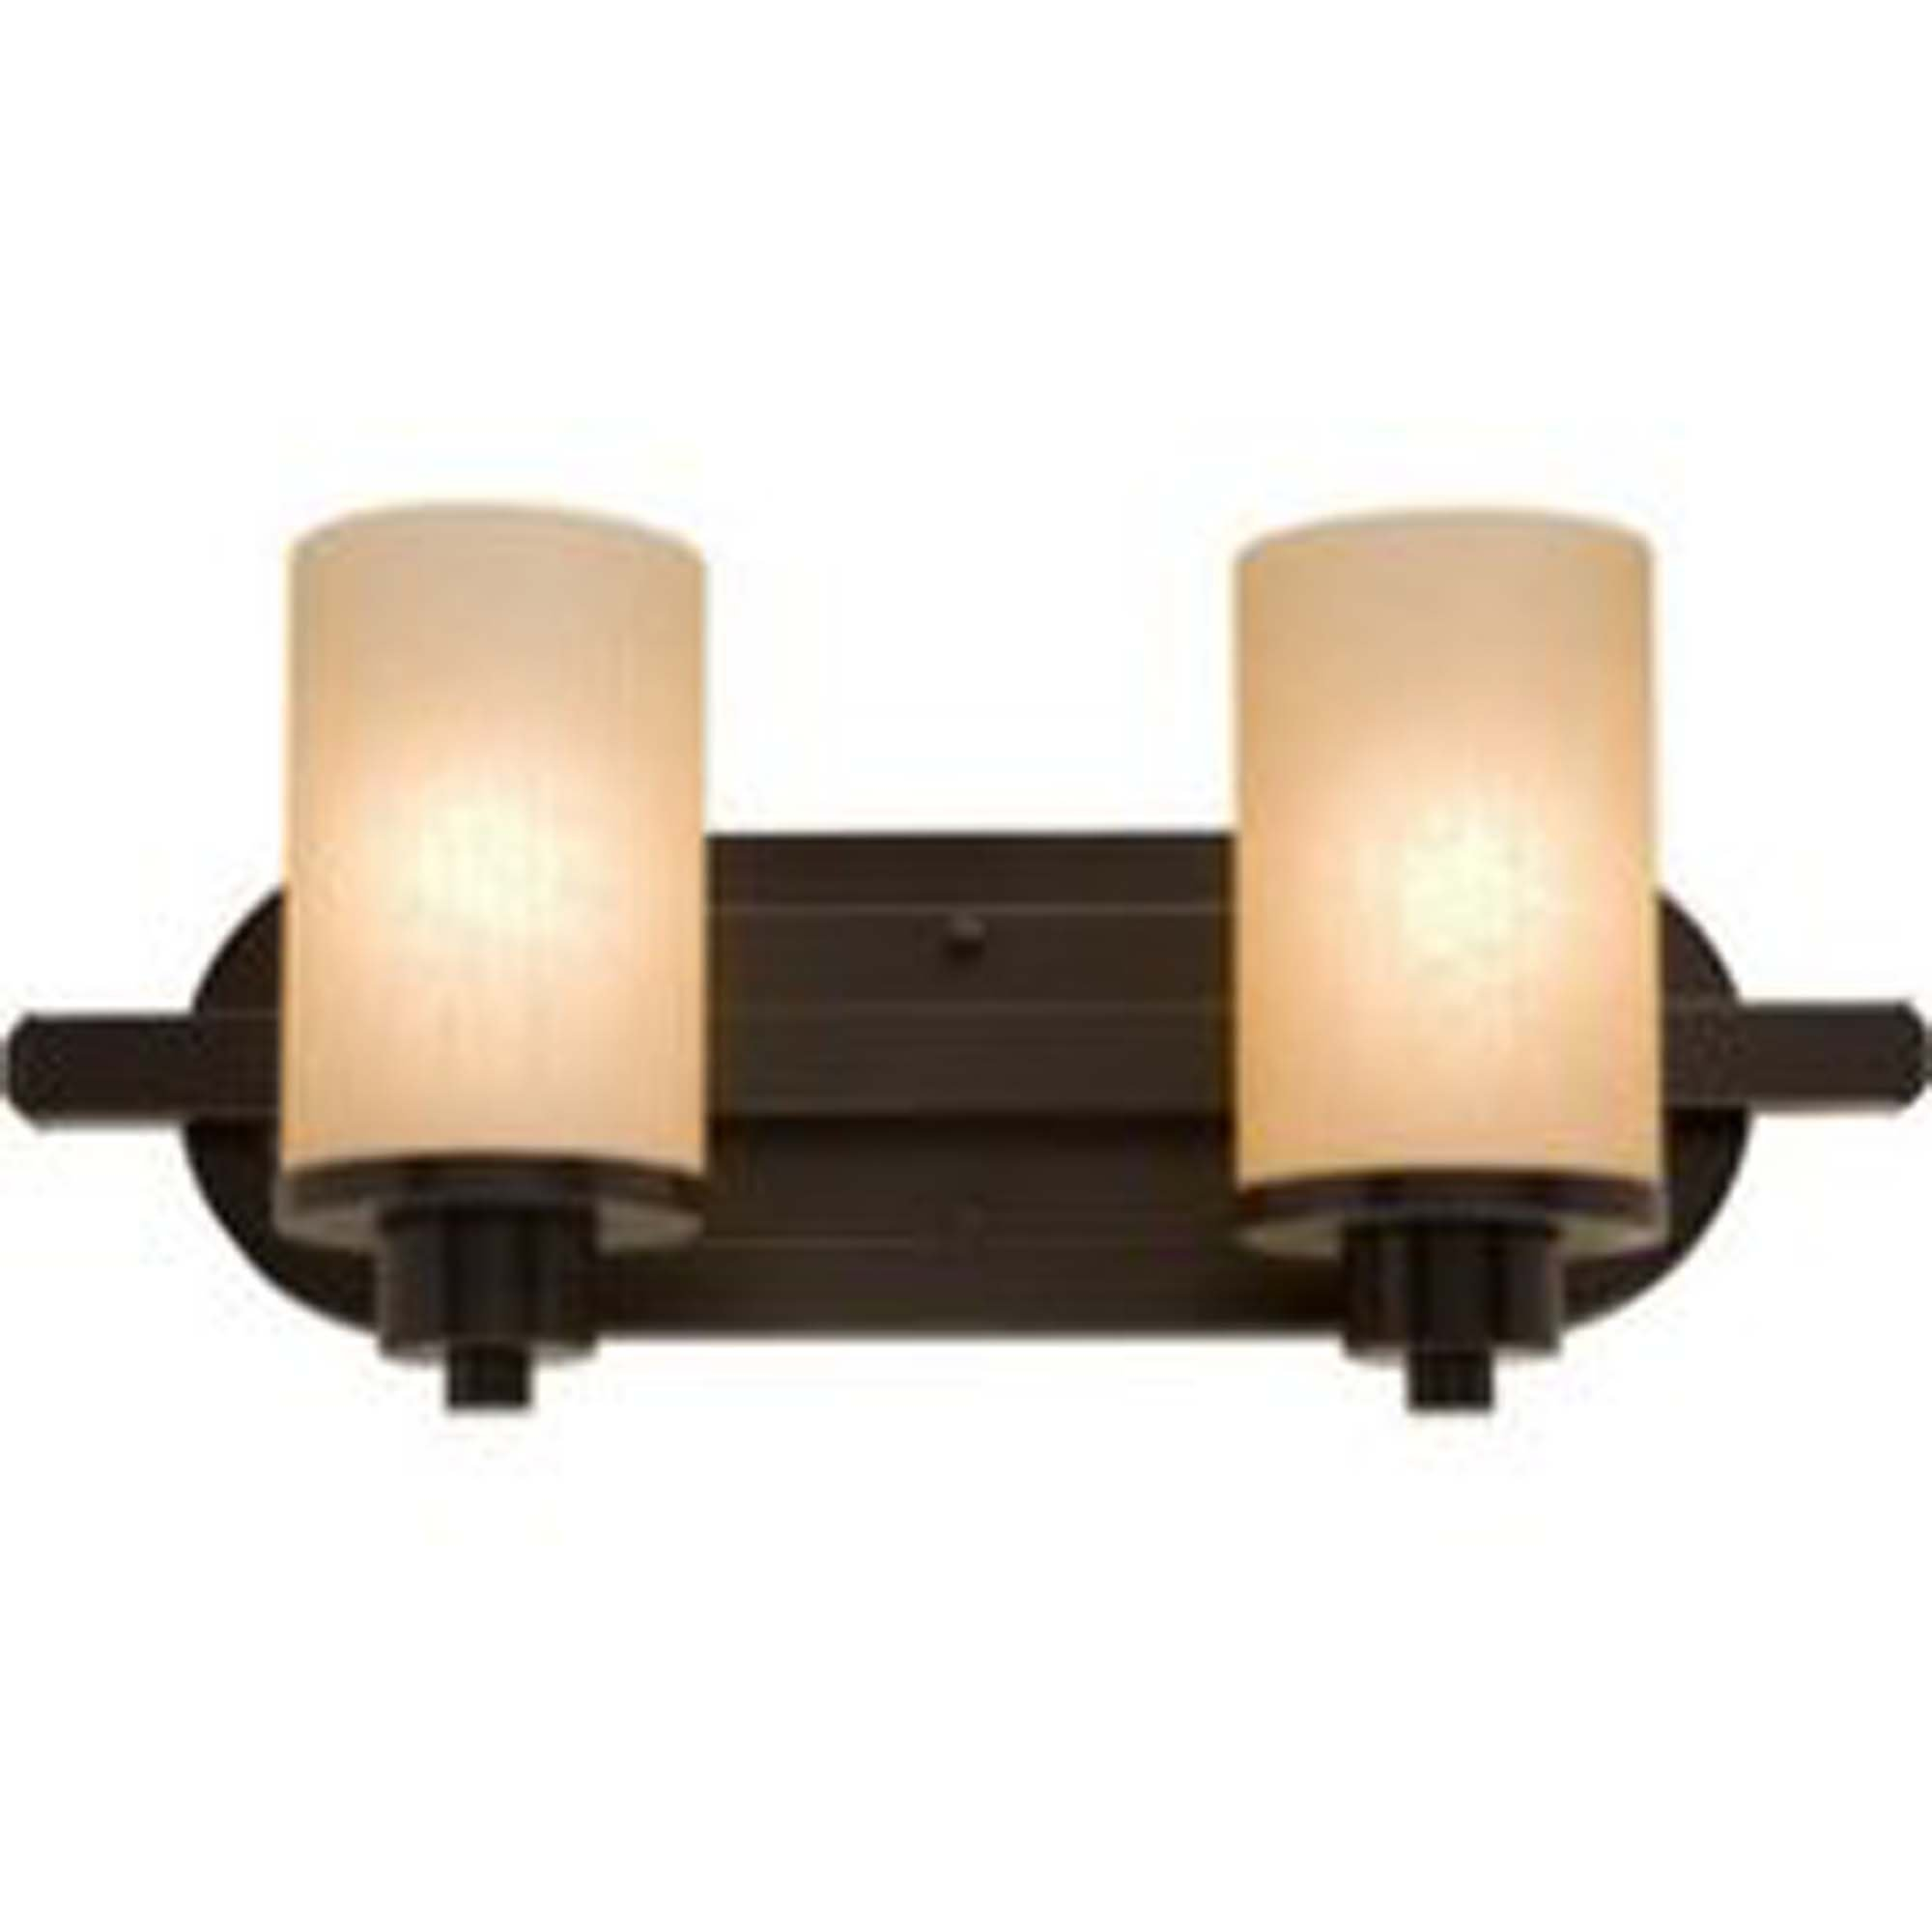 Artcraft Lighting Parkdale 2-Light Bathroom Vanity Light, Oil-Rubbed Bronze by Artcraft Lighting